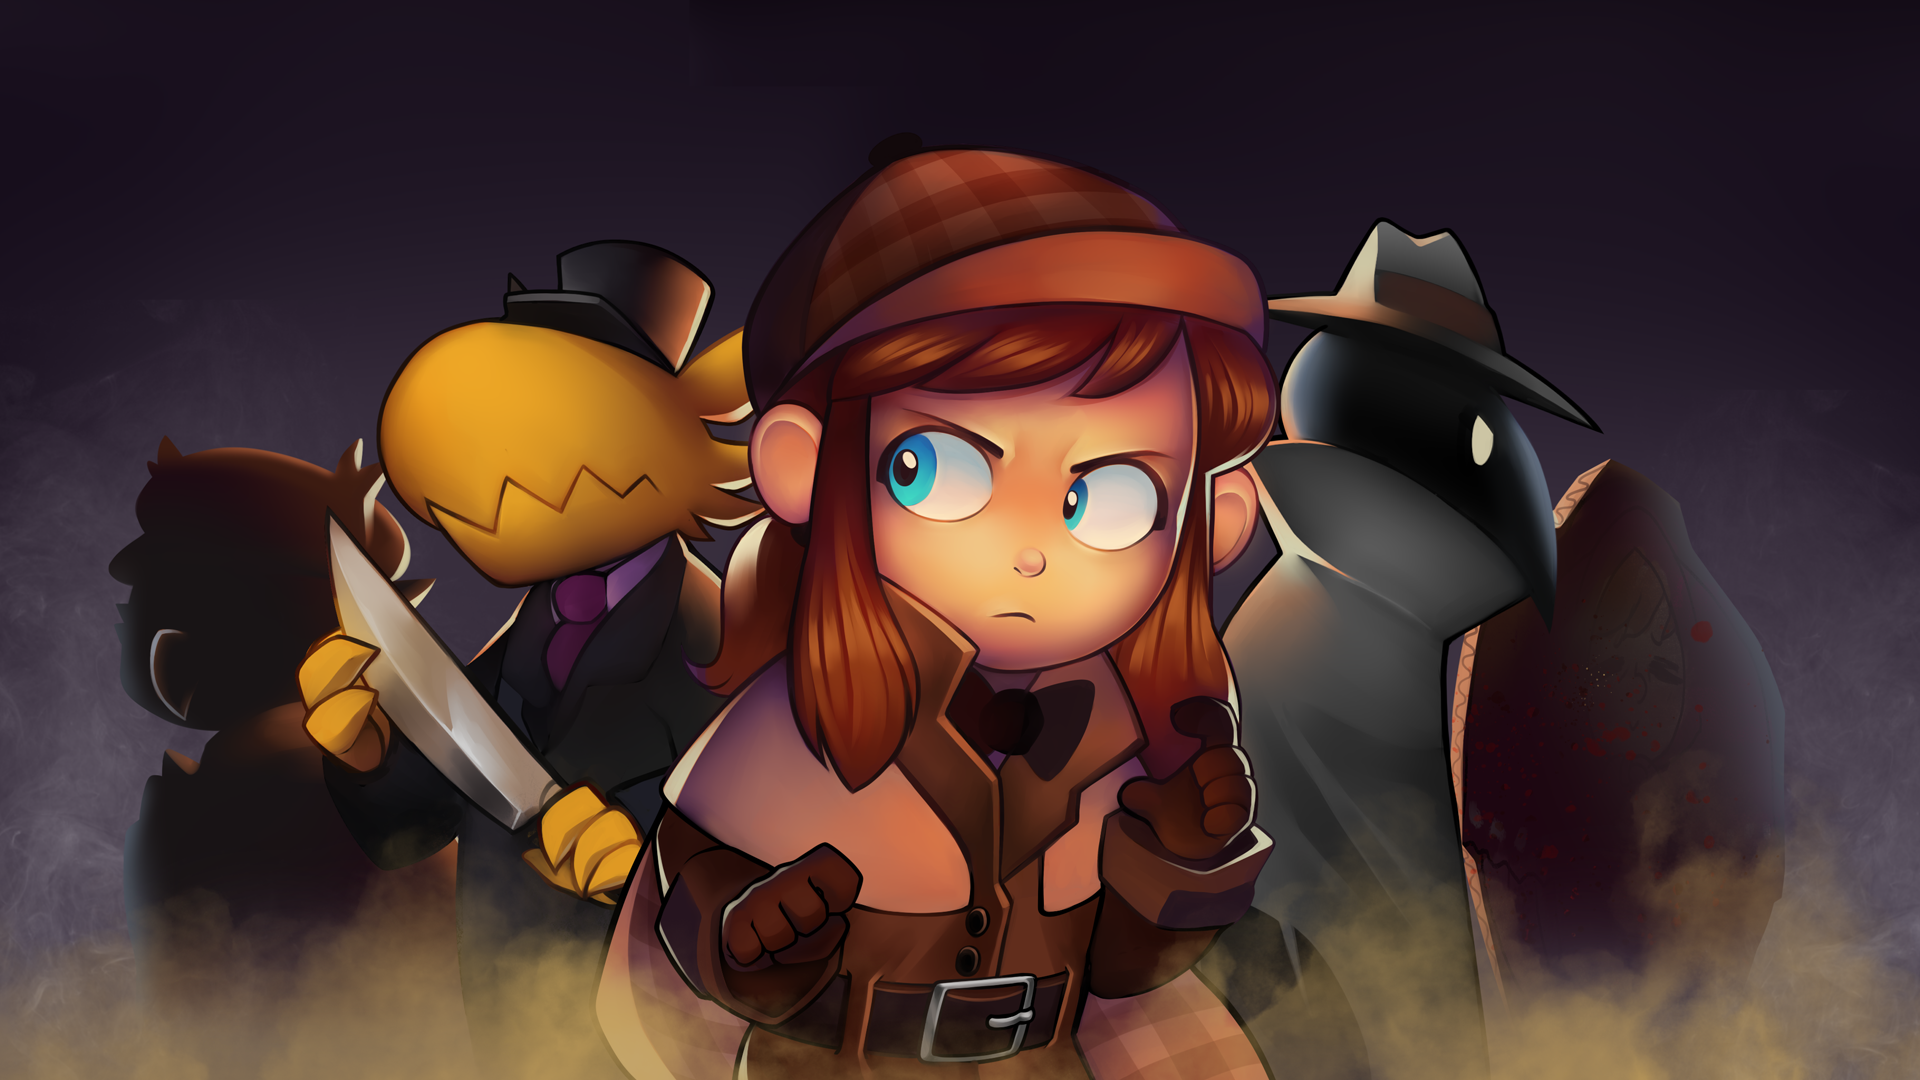 Steam A Hat in Time